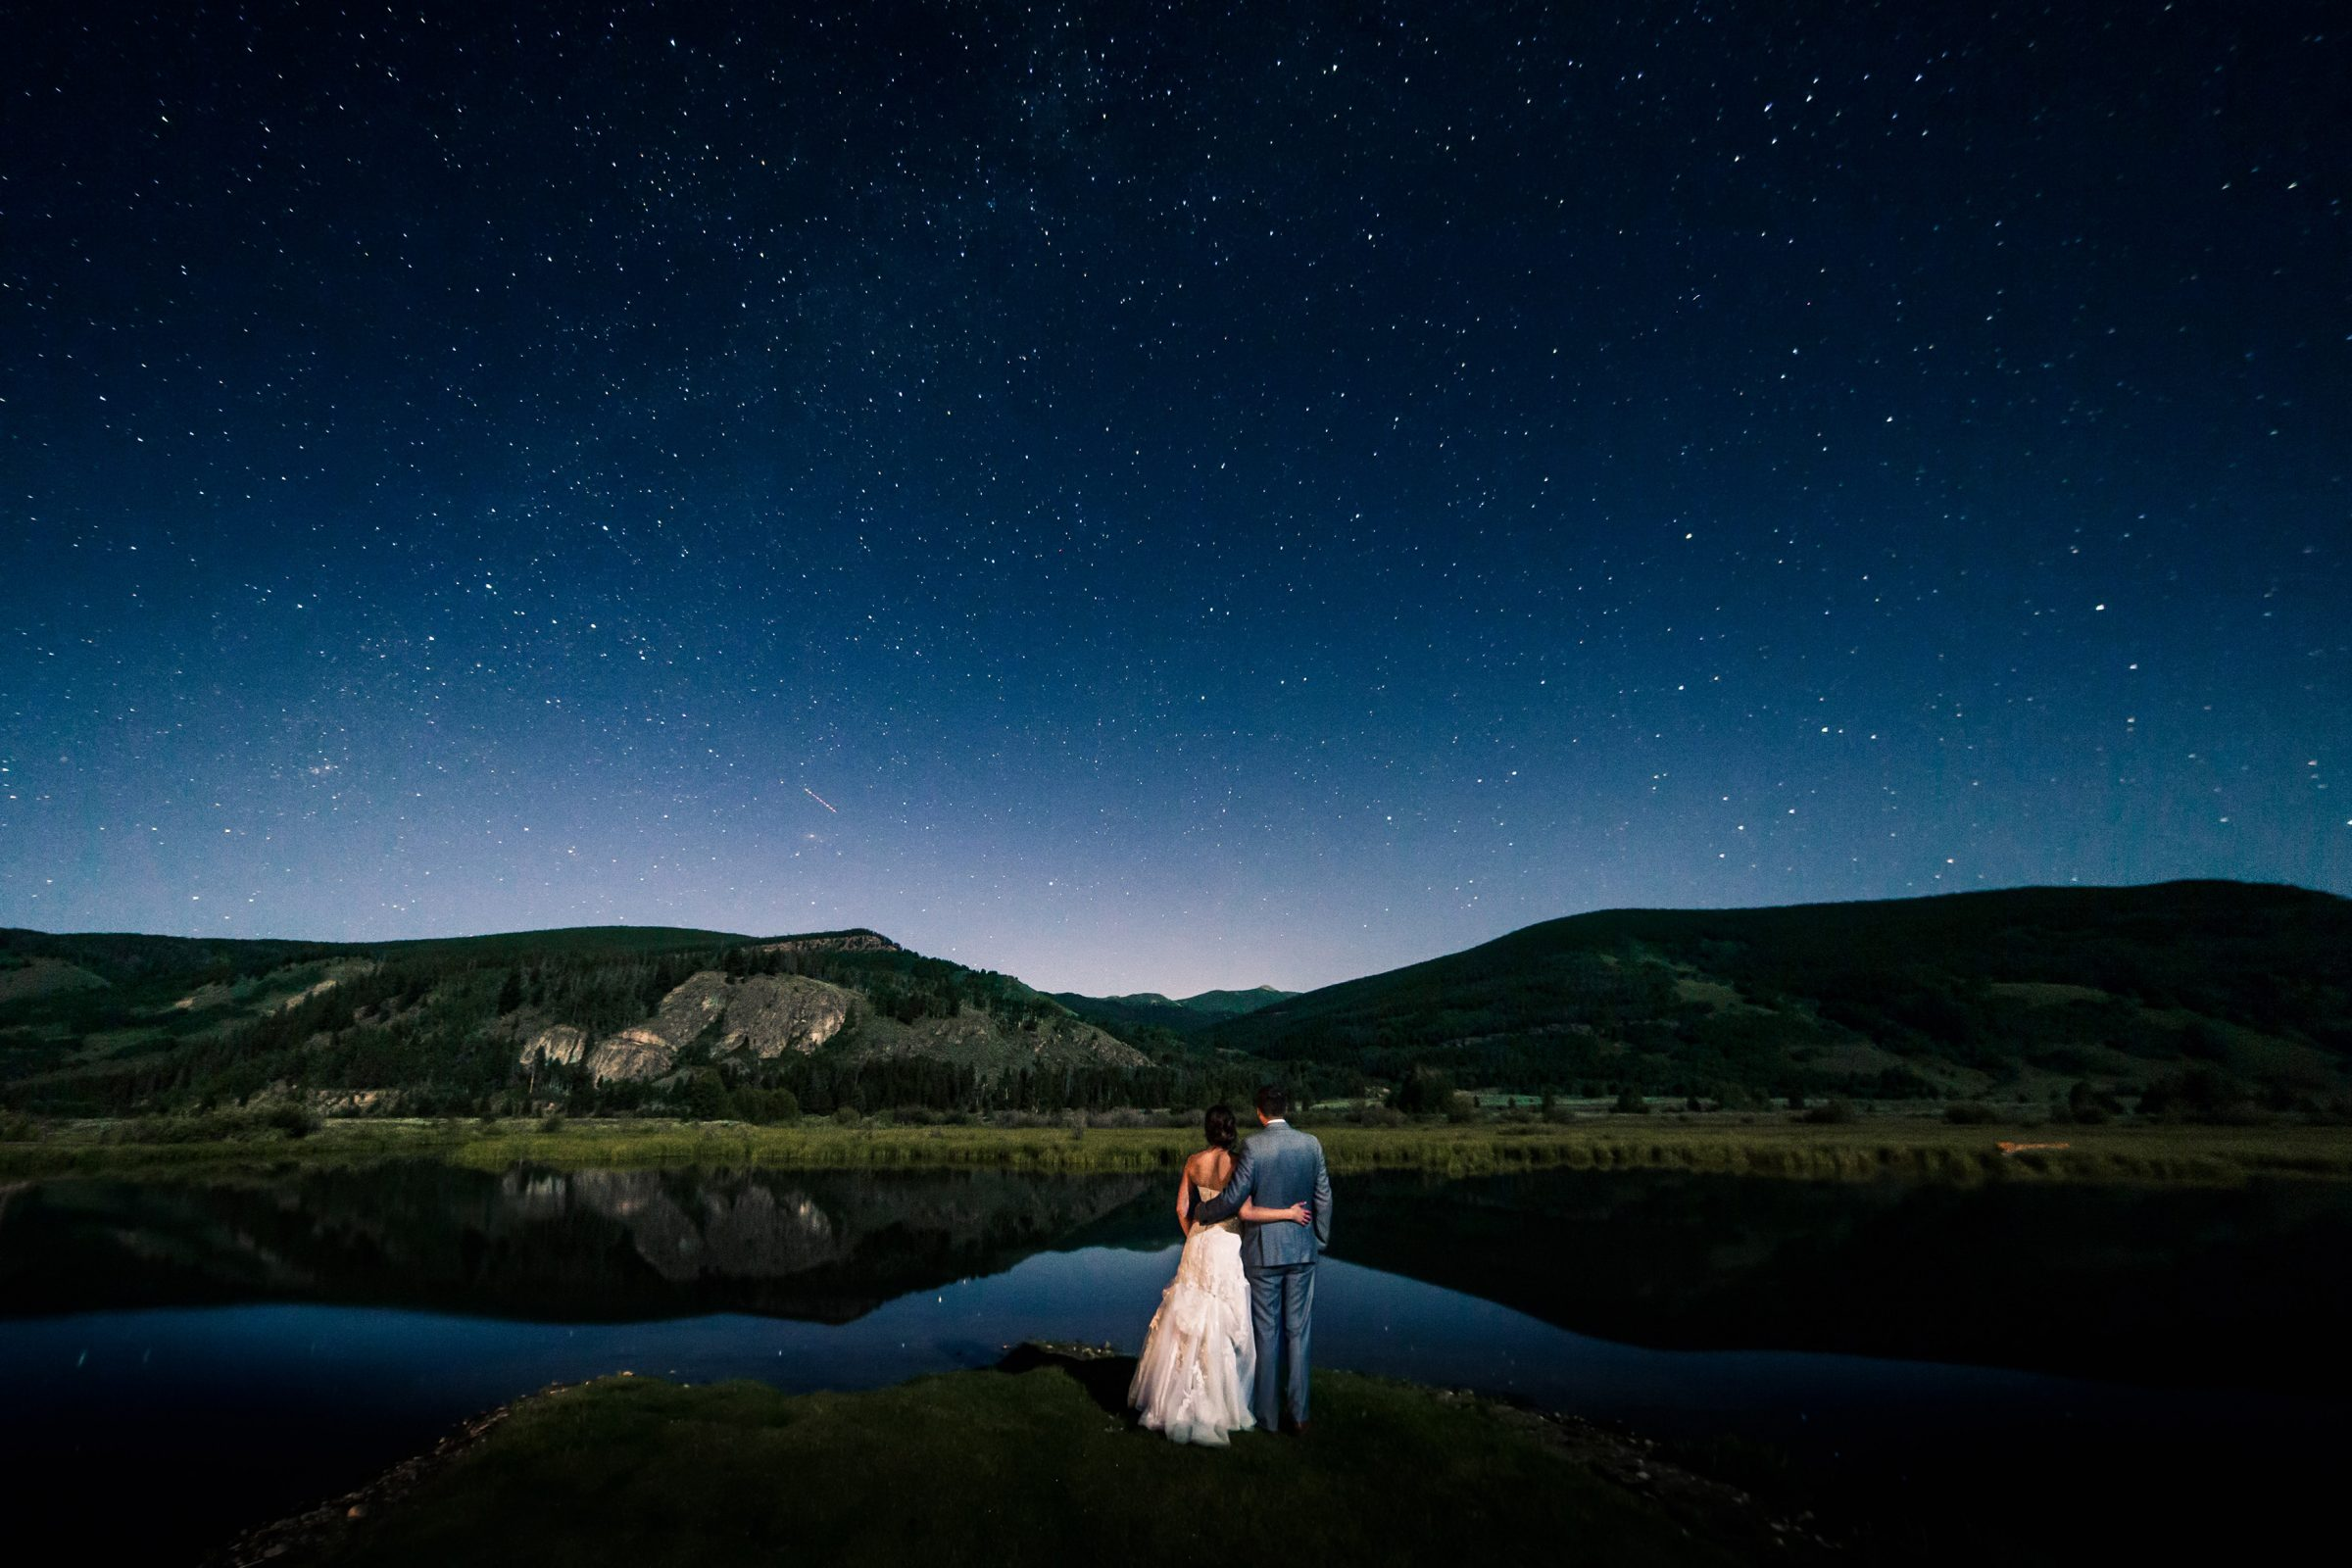 Starlight Wedding Photo at Camp Hale in Redcliff, CO